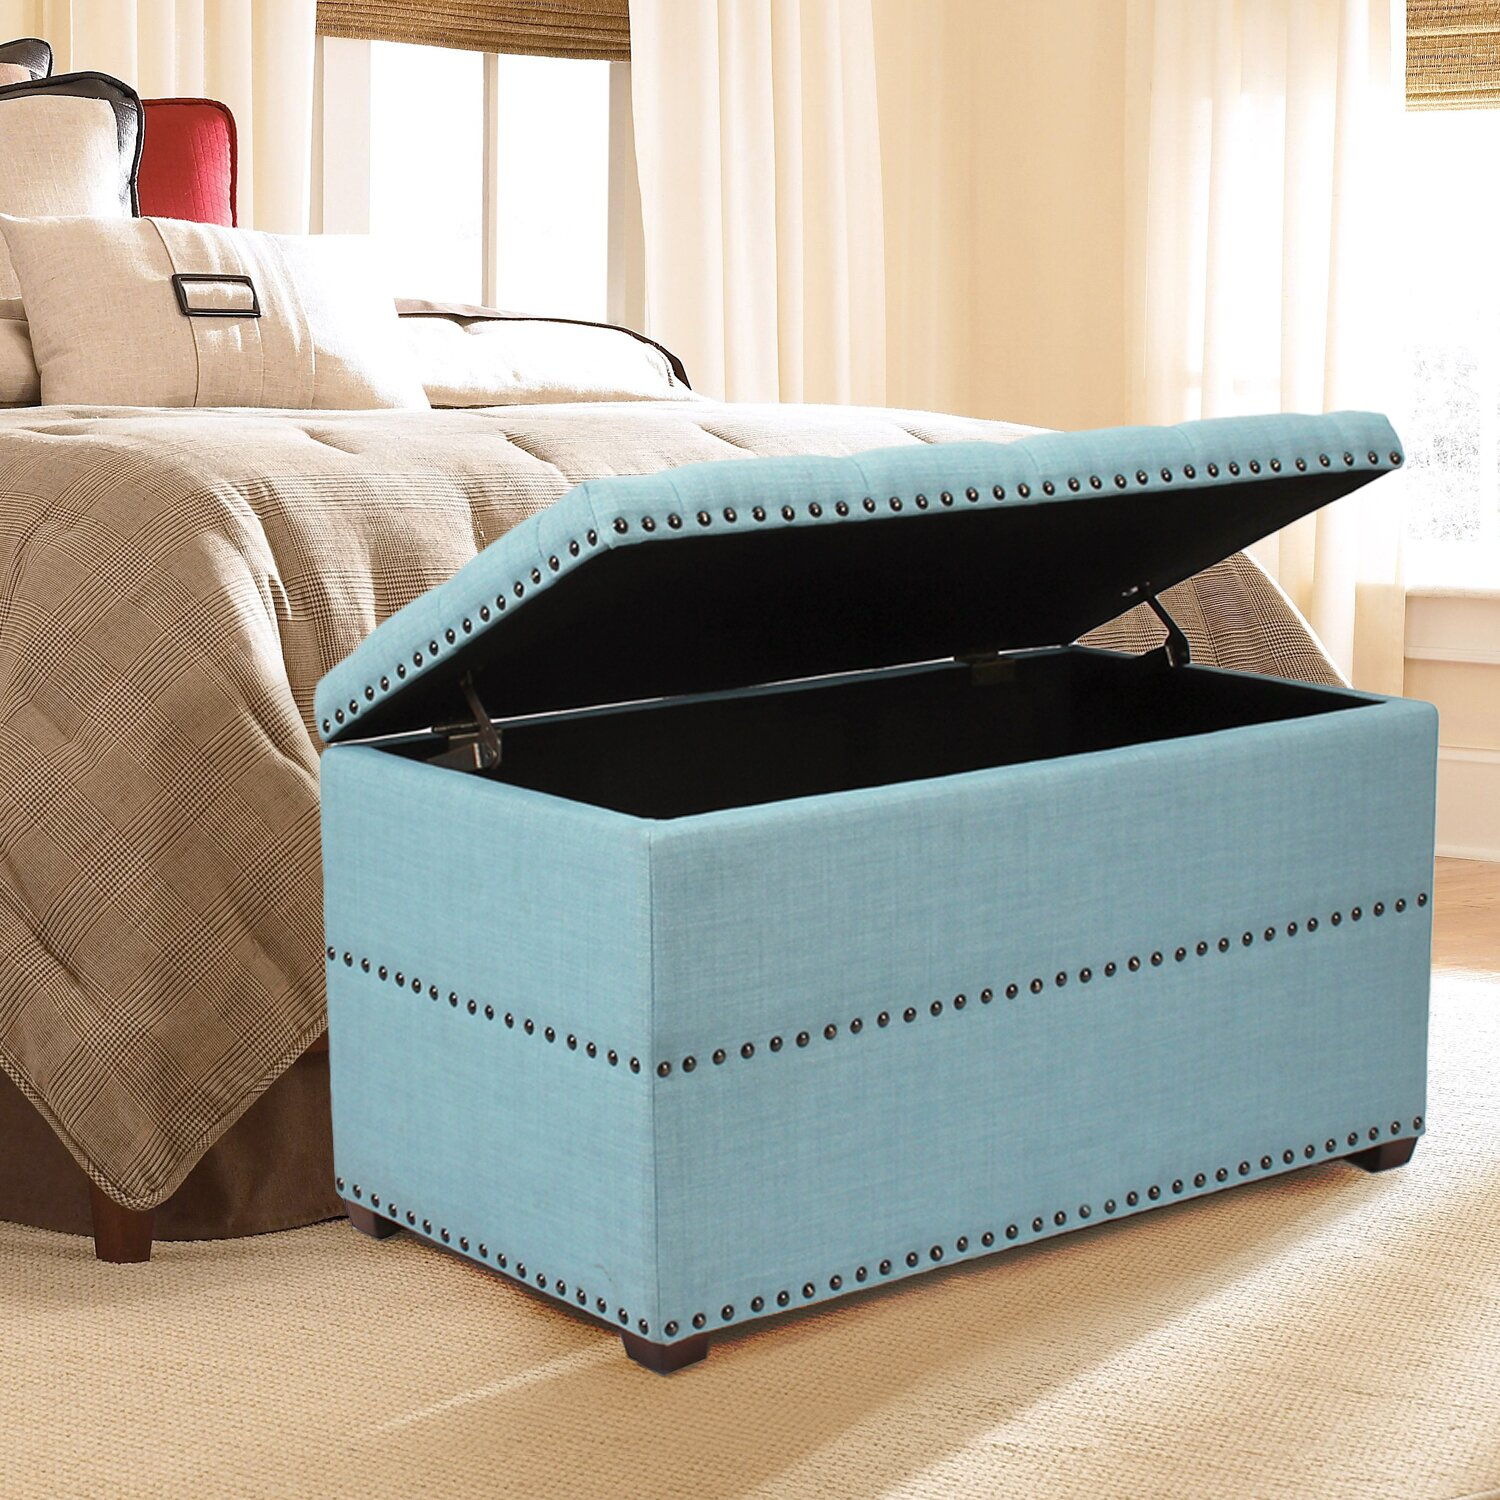 Adecotrading Storage Bedroom Bench Reviews Wayfair